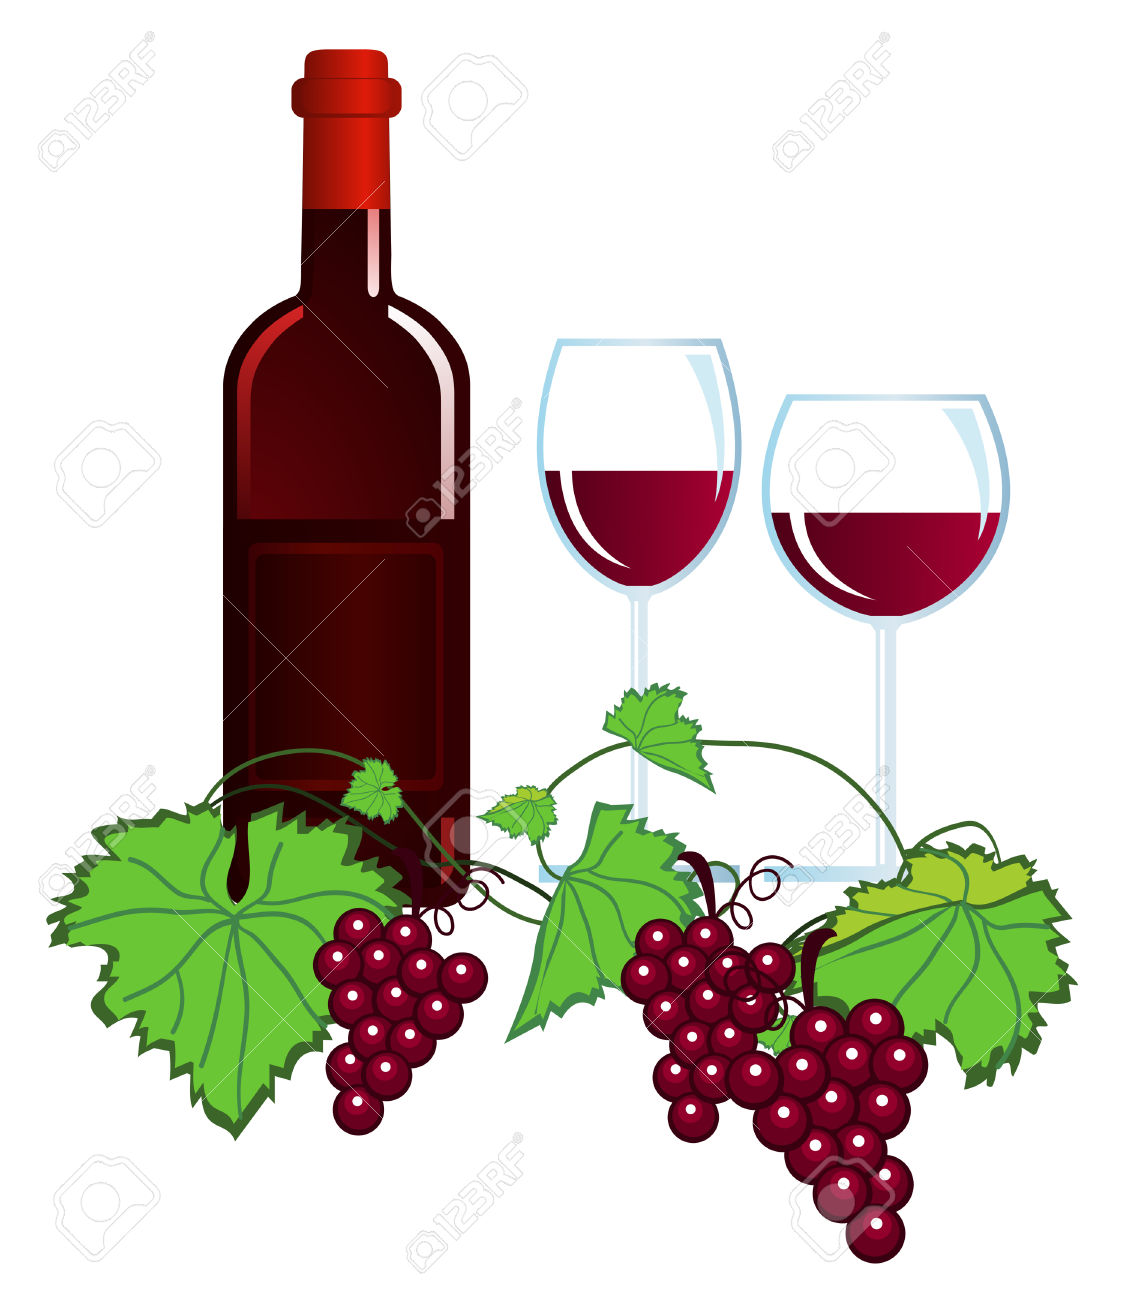 Best Wine Clipart Images For Personal Use #15553.